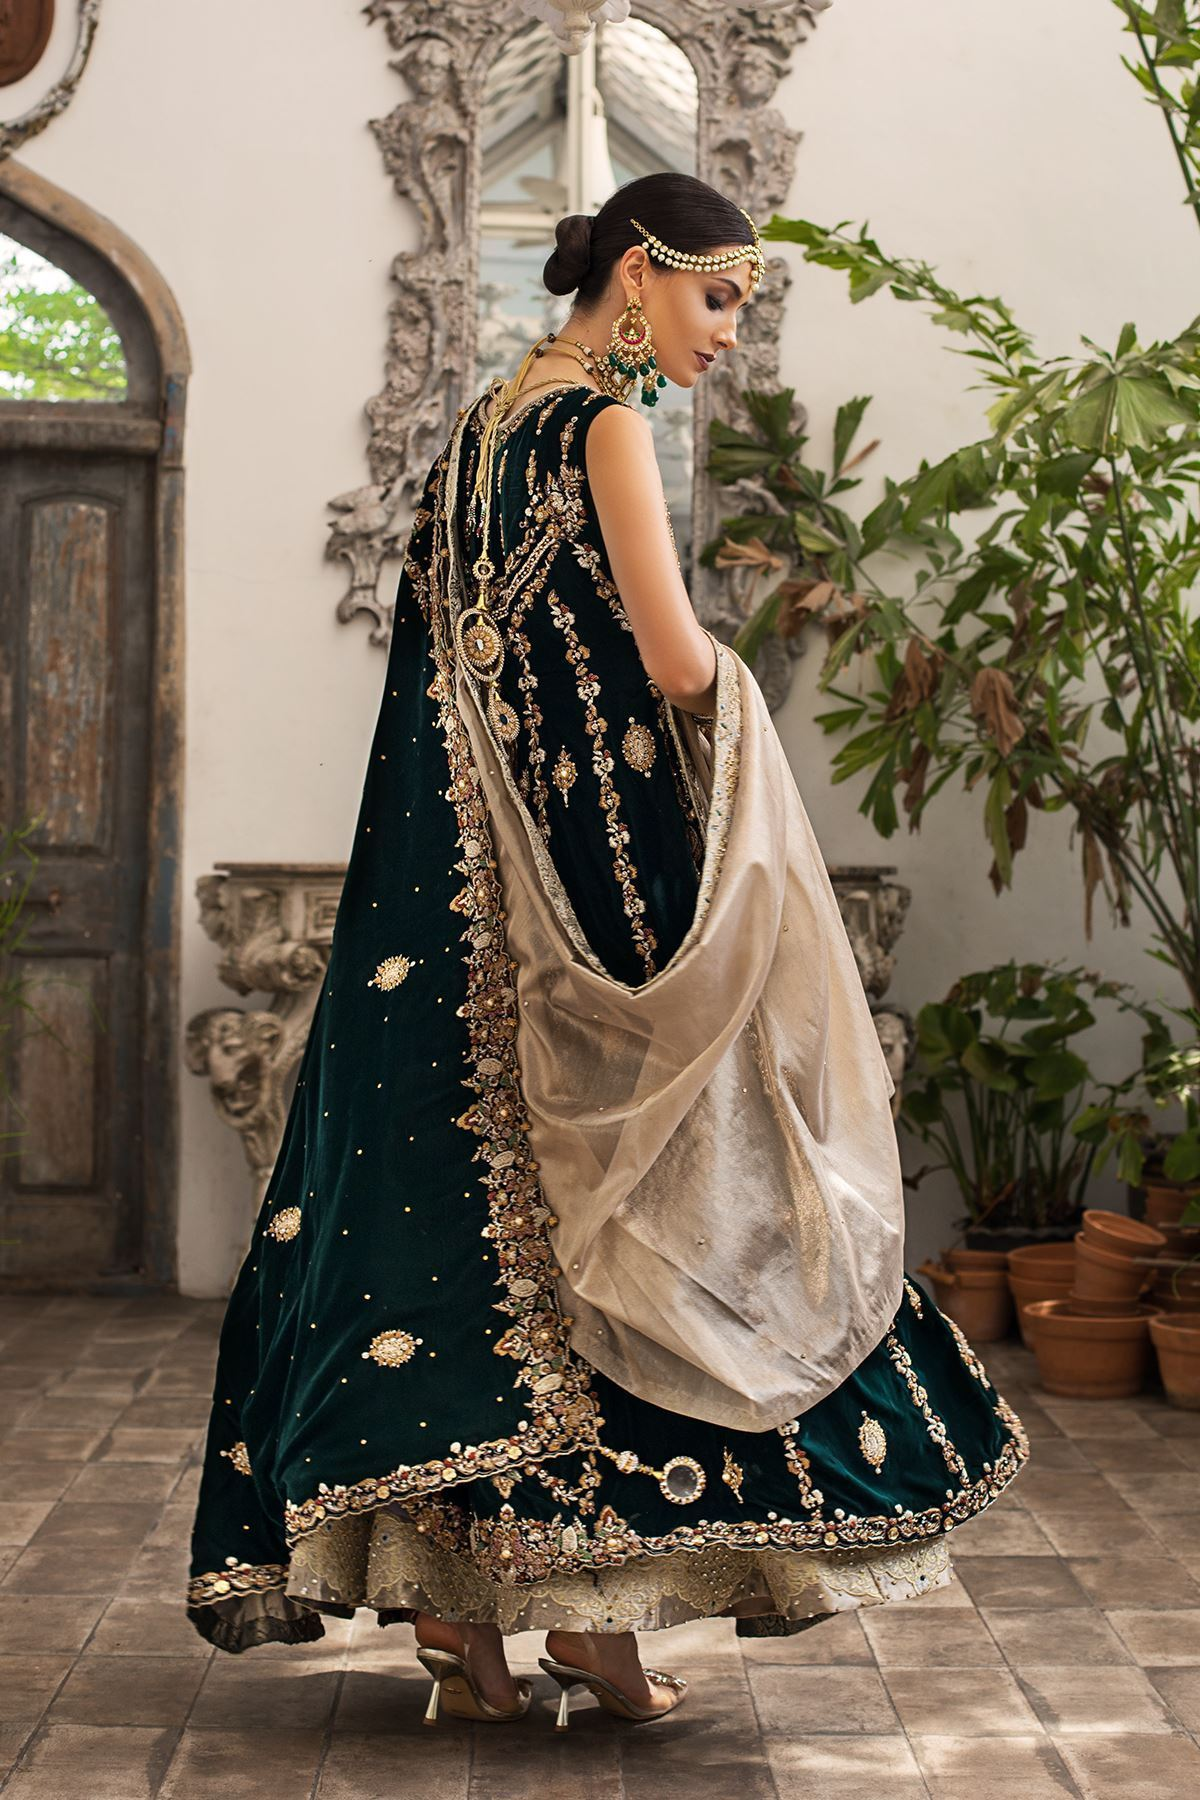 Moazzam Khan Party Wear Bridals Maxi with Dupatta in Green for Women